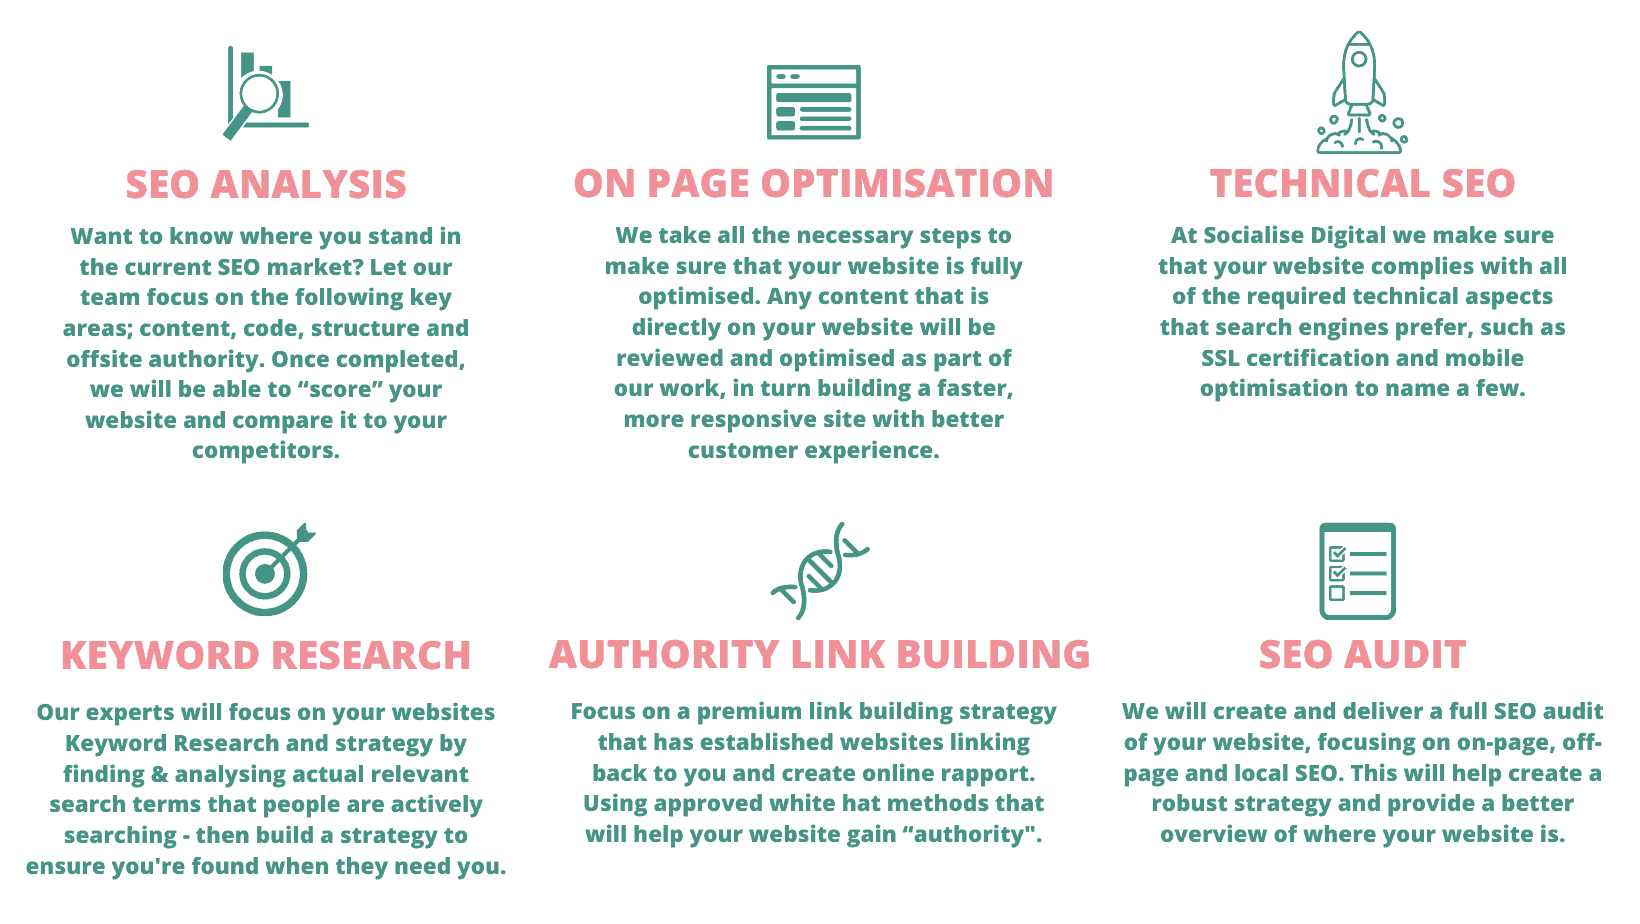 The importance of SEO with Socialise Digital